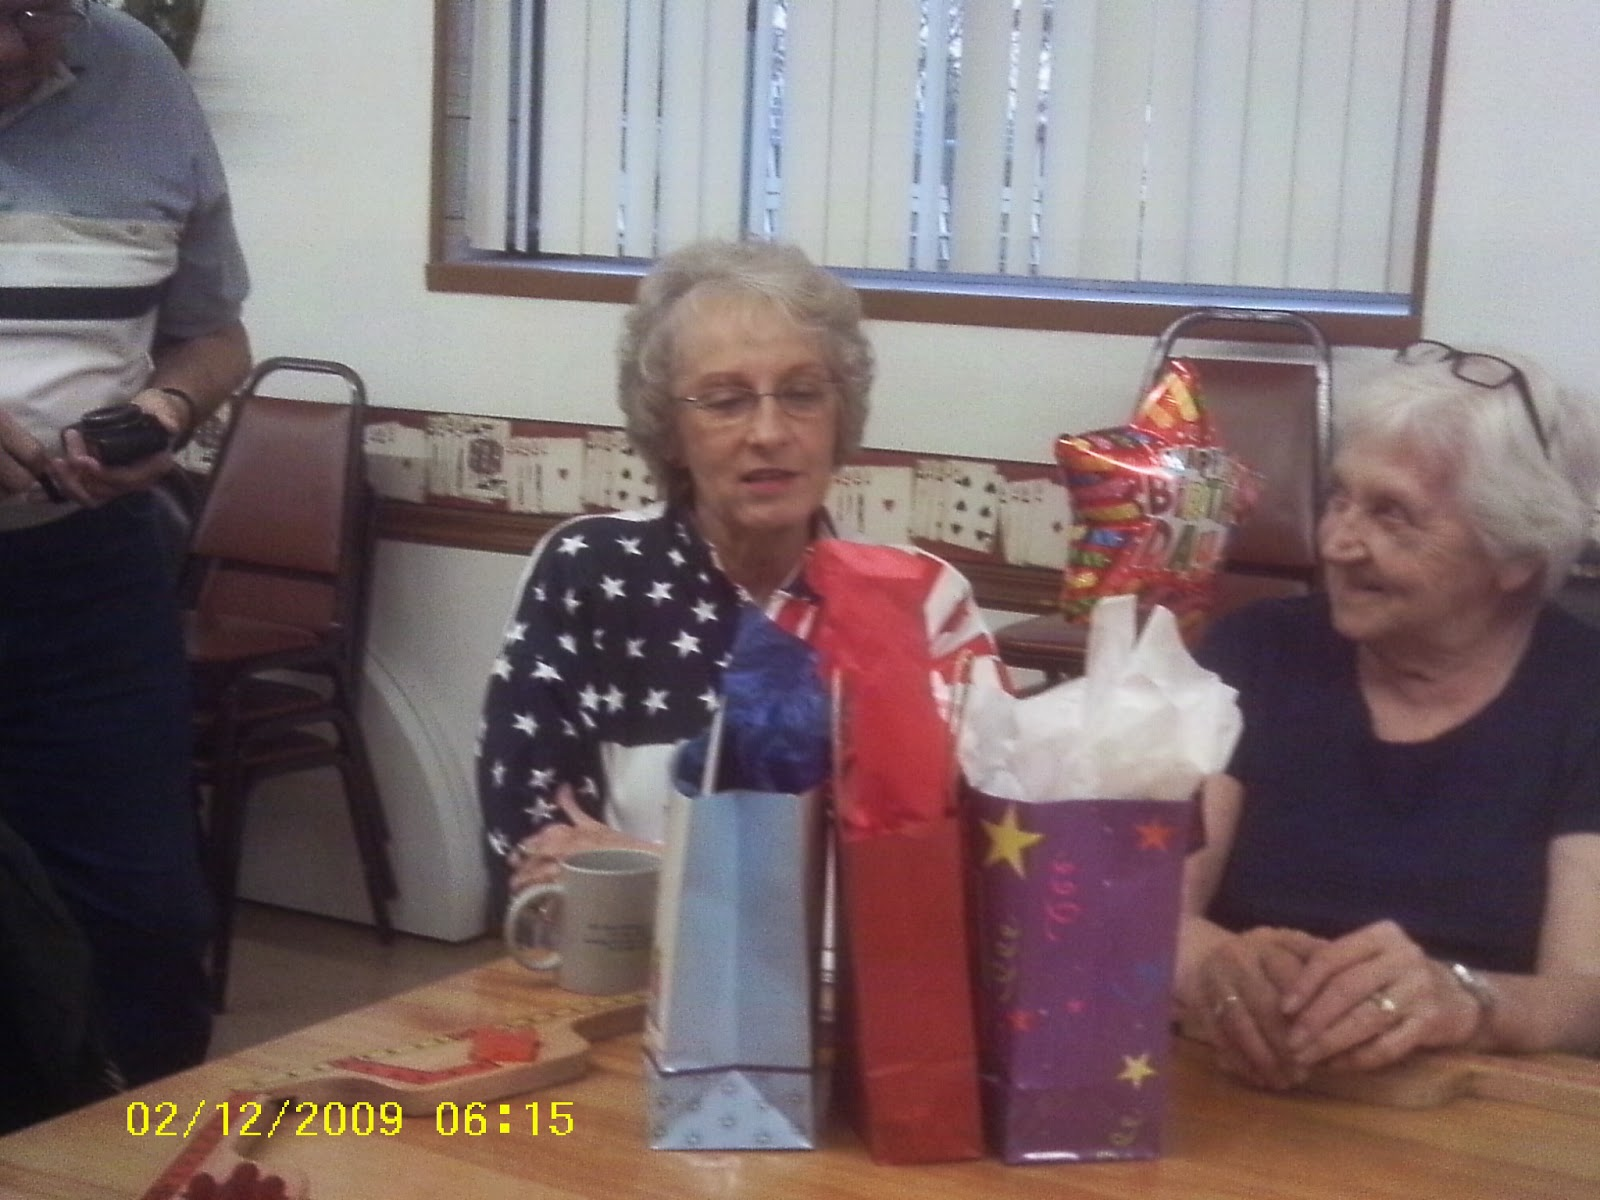 e35c60bd71 Phyllis looks at the gifts she received and was very appreciative. We had  so much fun